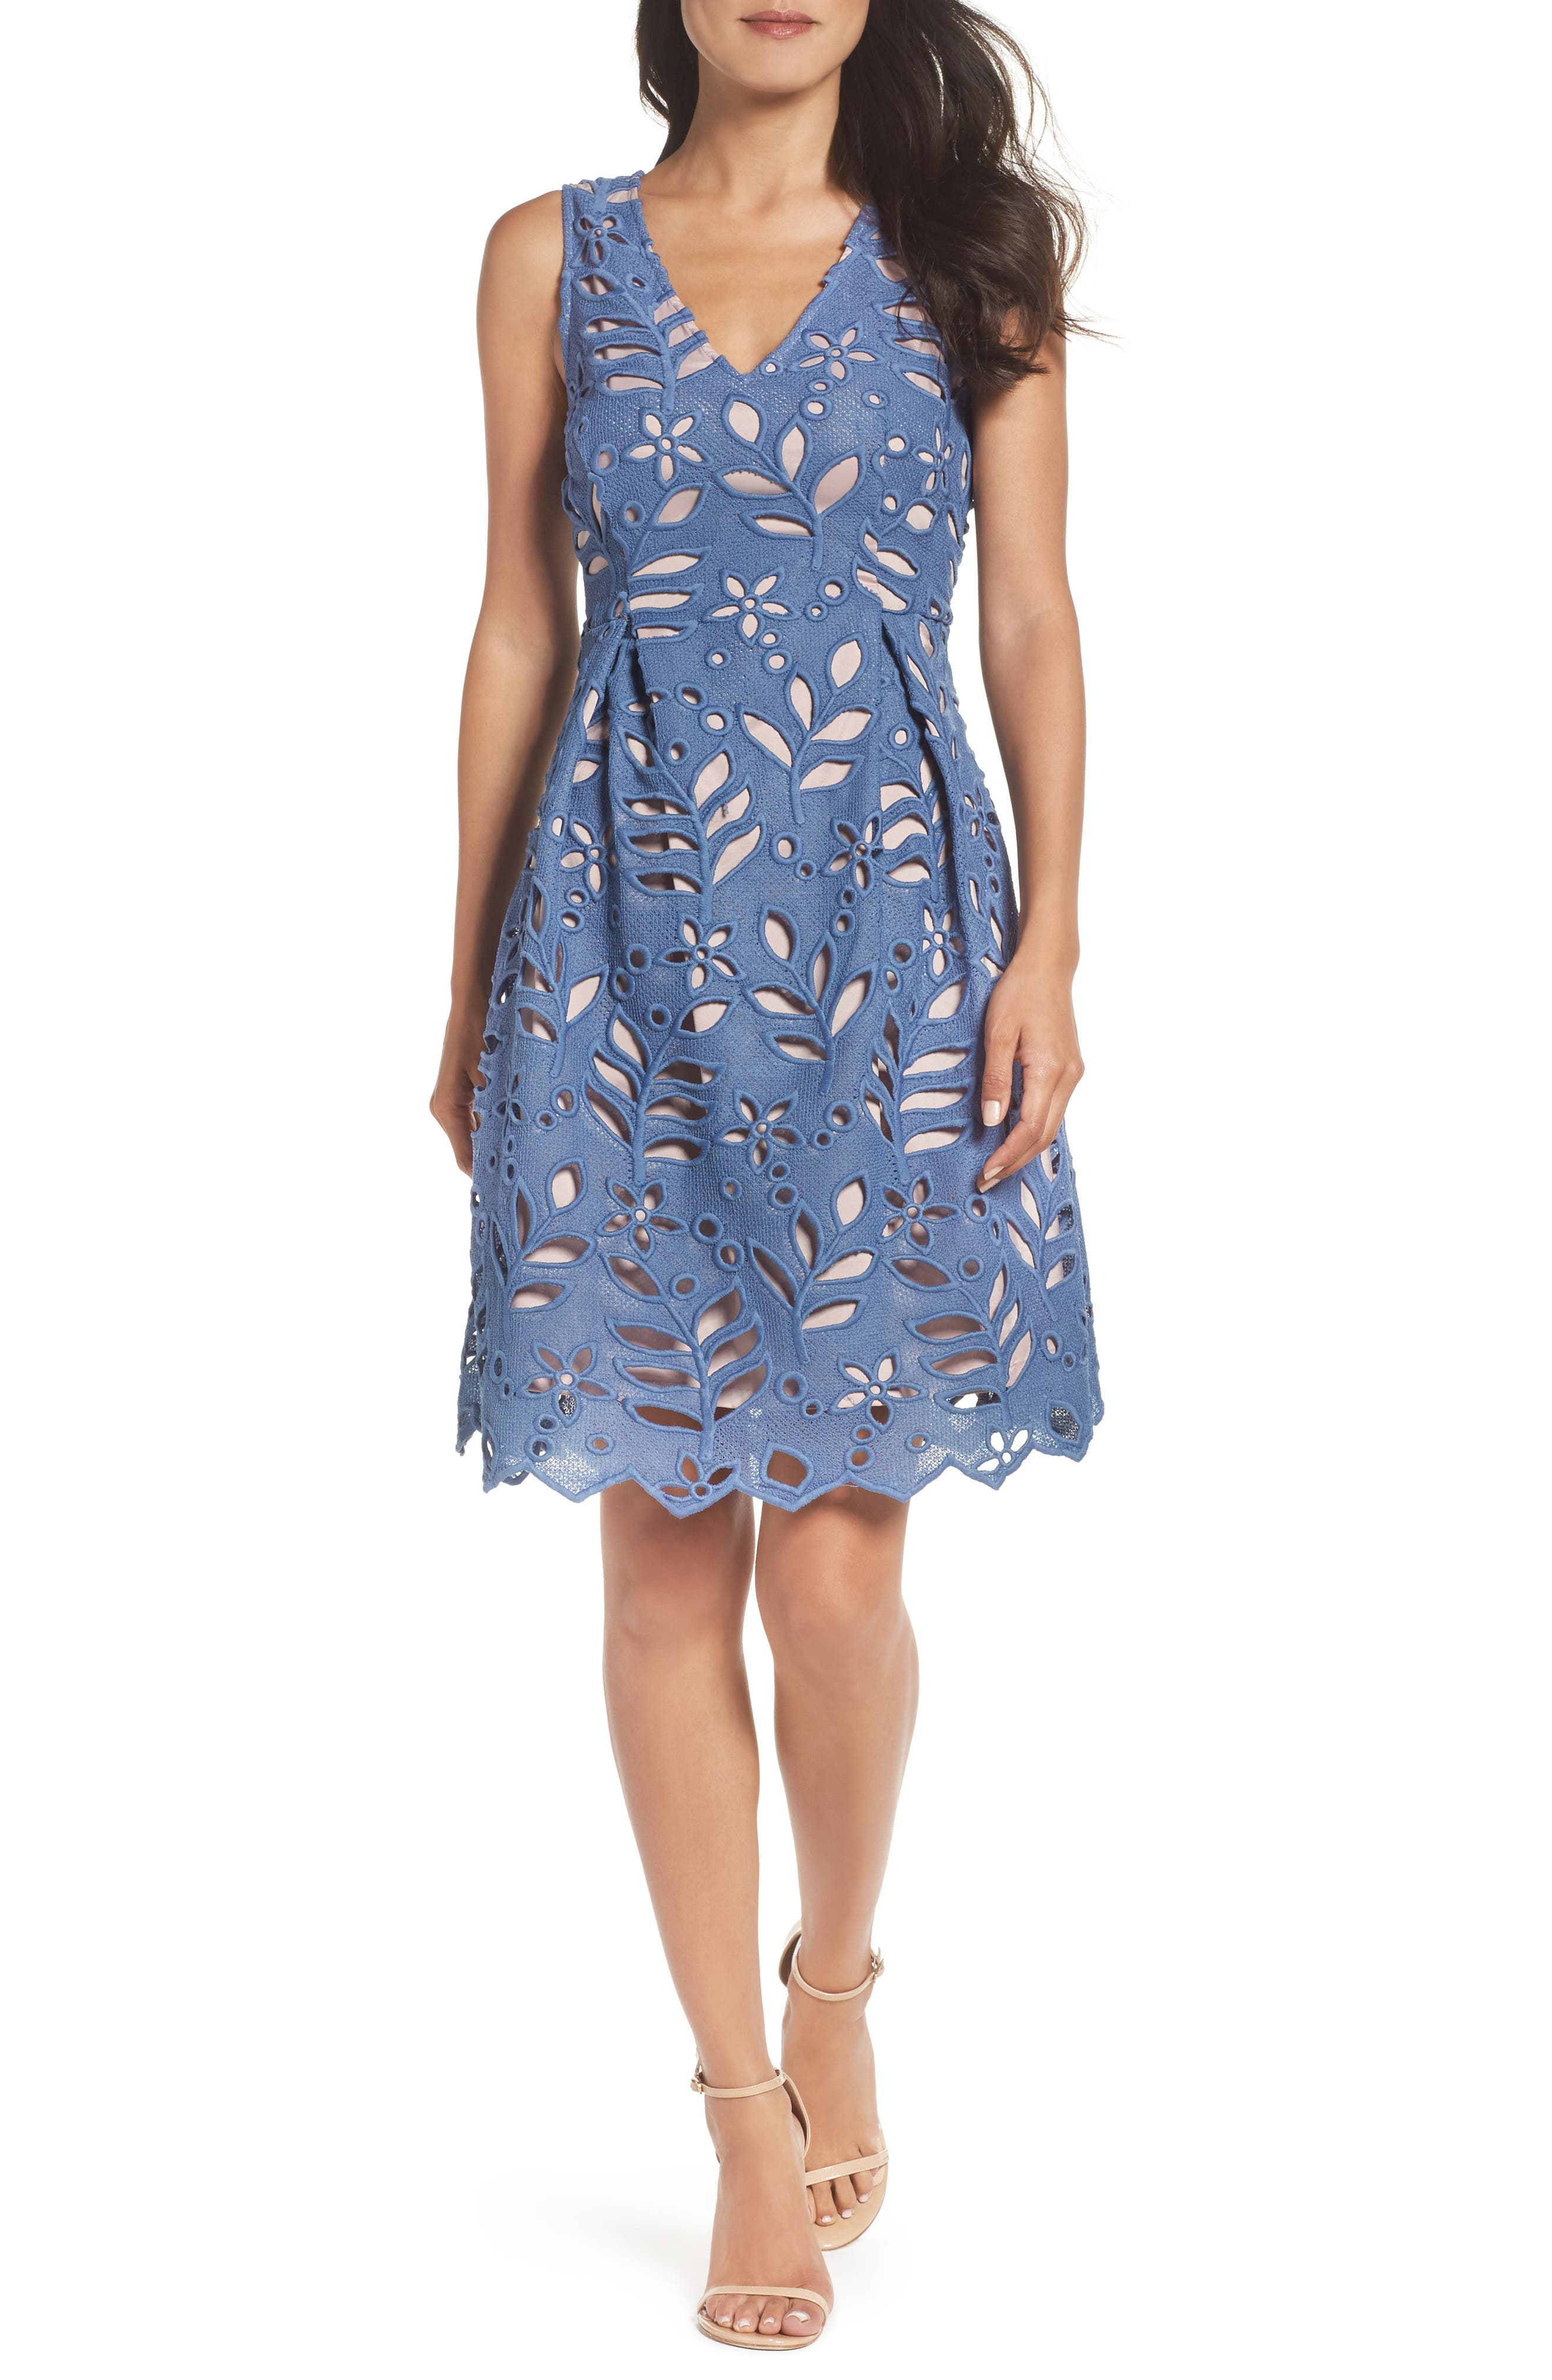 Main Image - Adrianna Papell Bella Lace Fit & Flare Dress